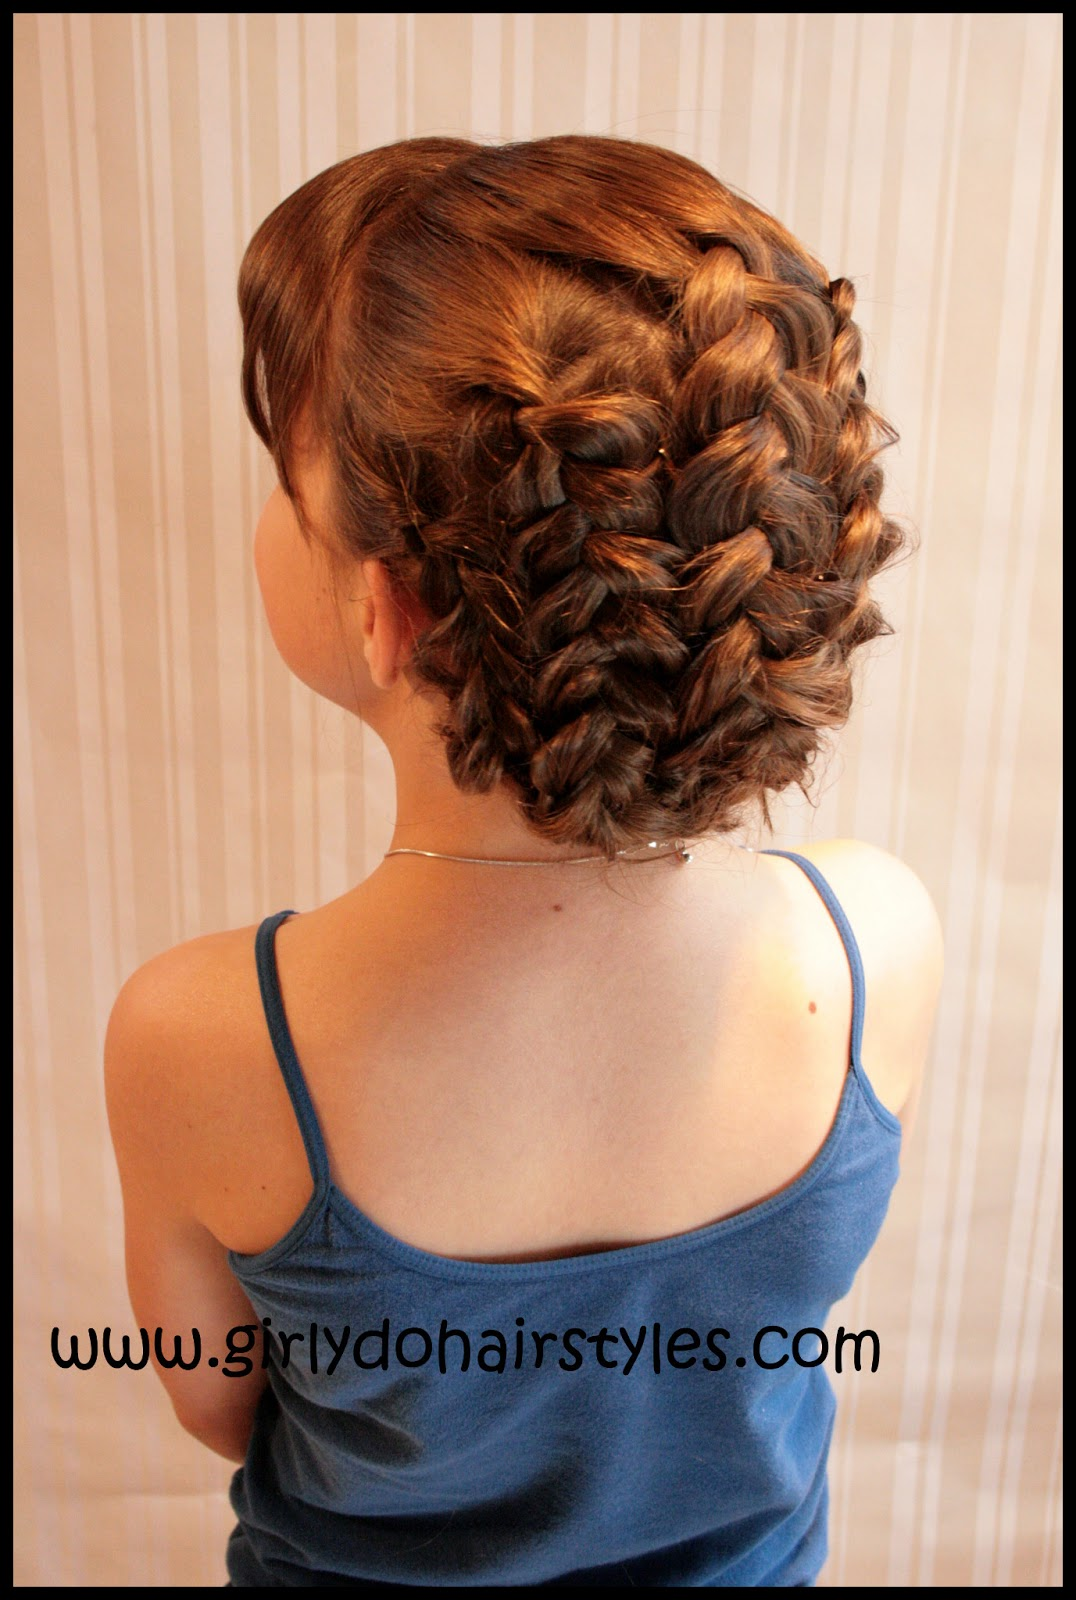 Recent Favorite Hairstyle Tutorial  The Braided Bubble Bun . 1076 x 1600.Hairstyles For Girls Ages 12 13